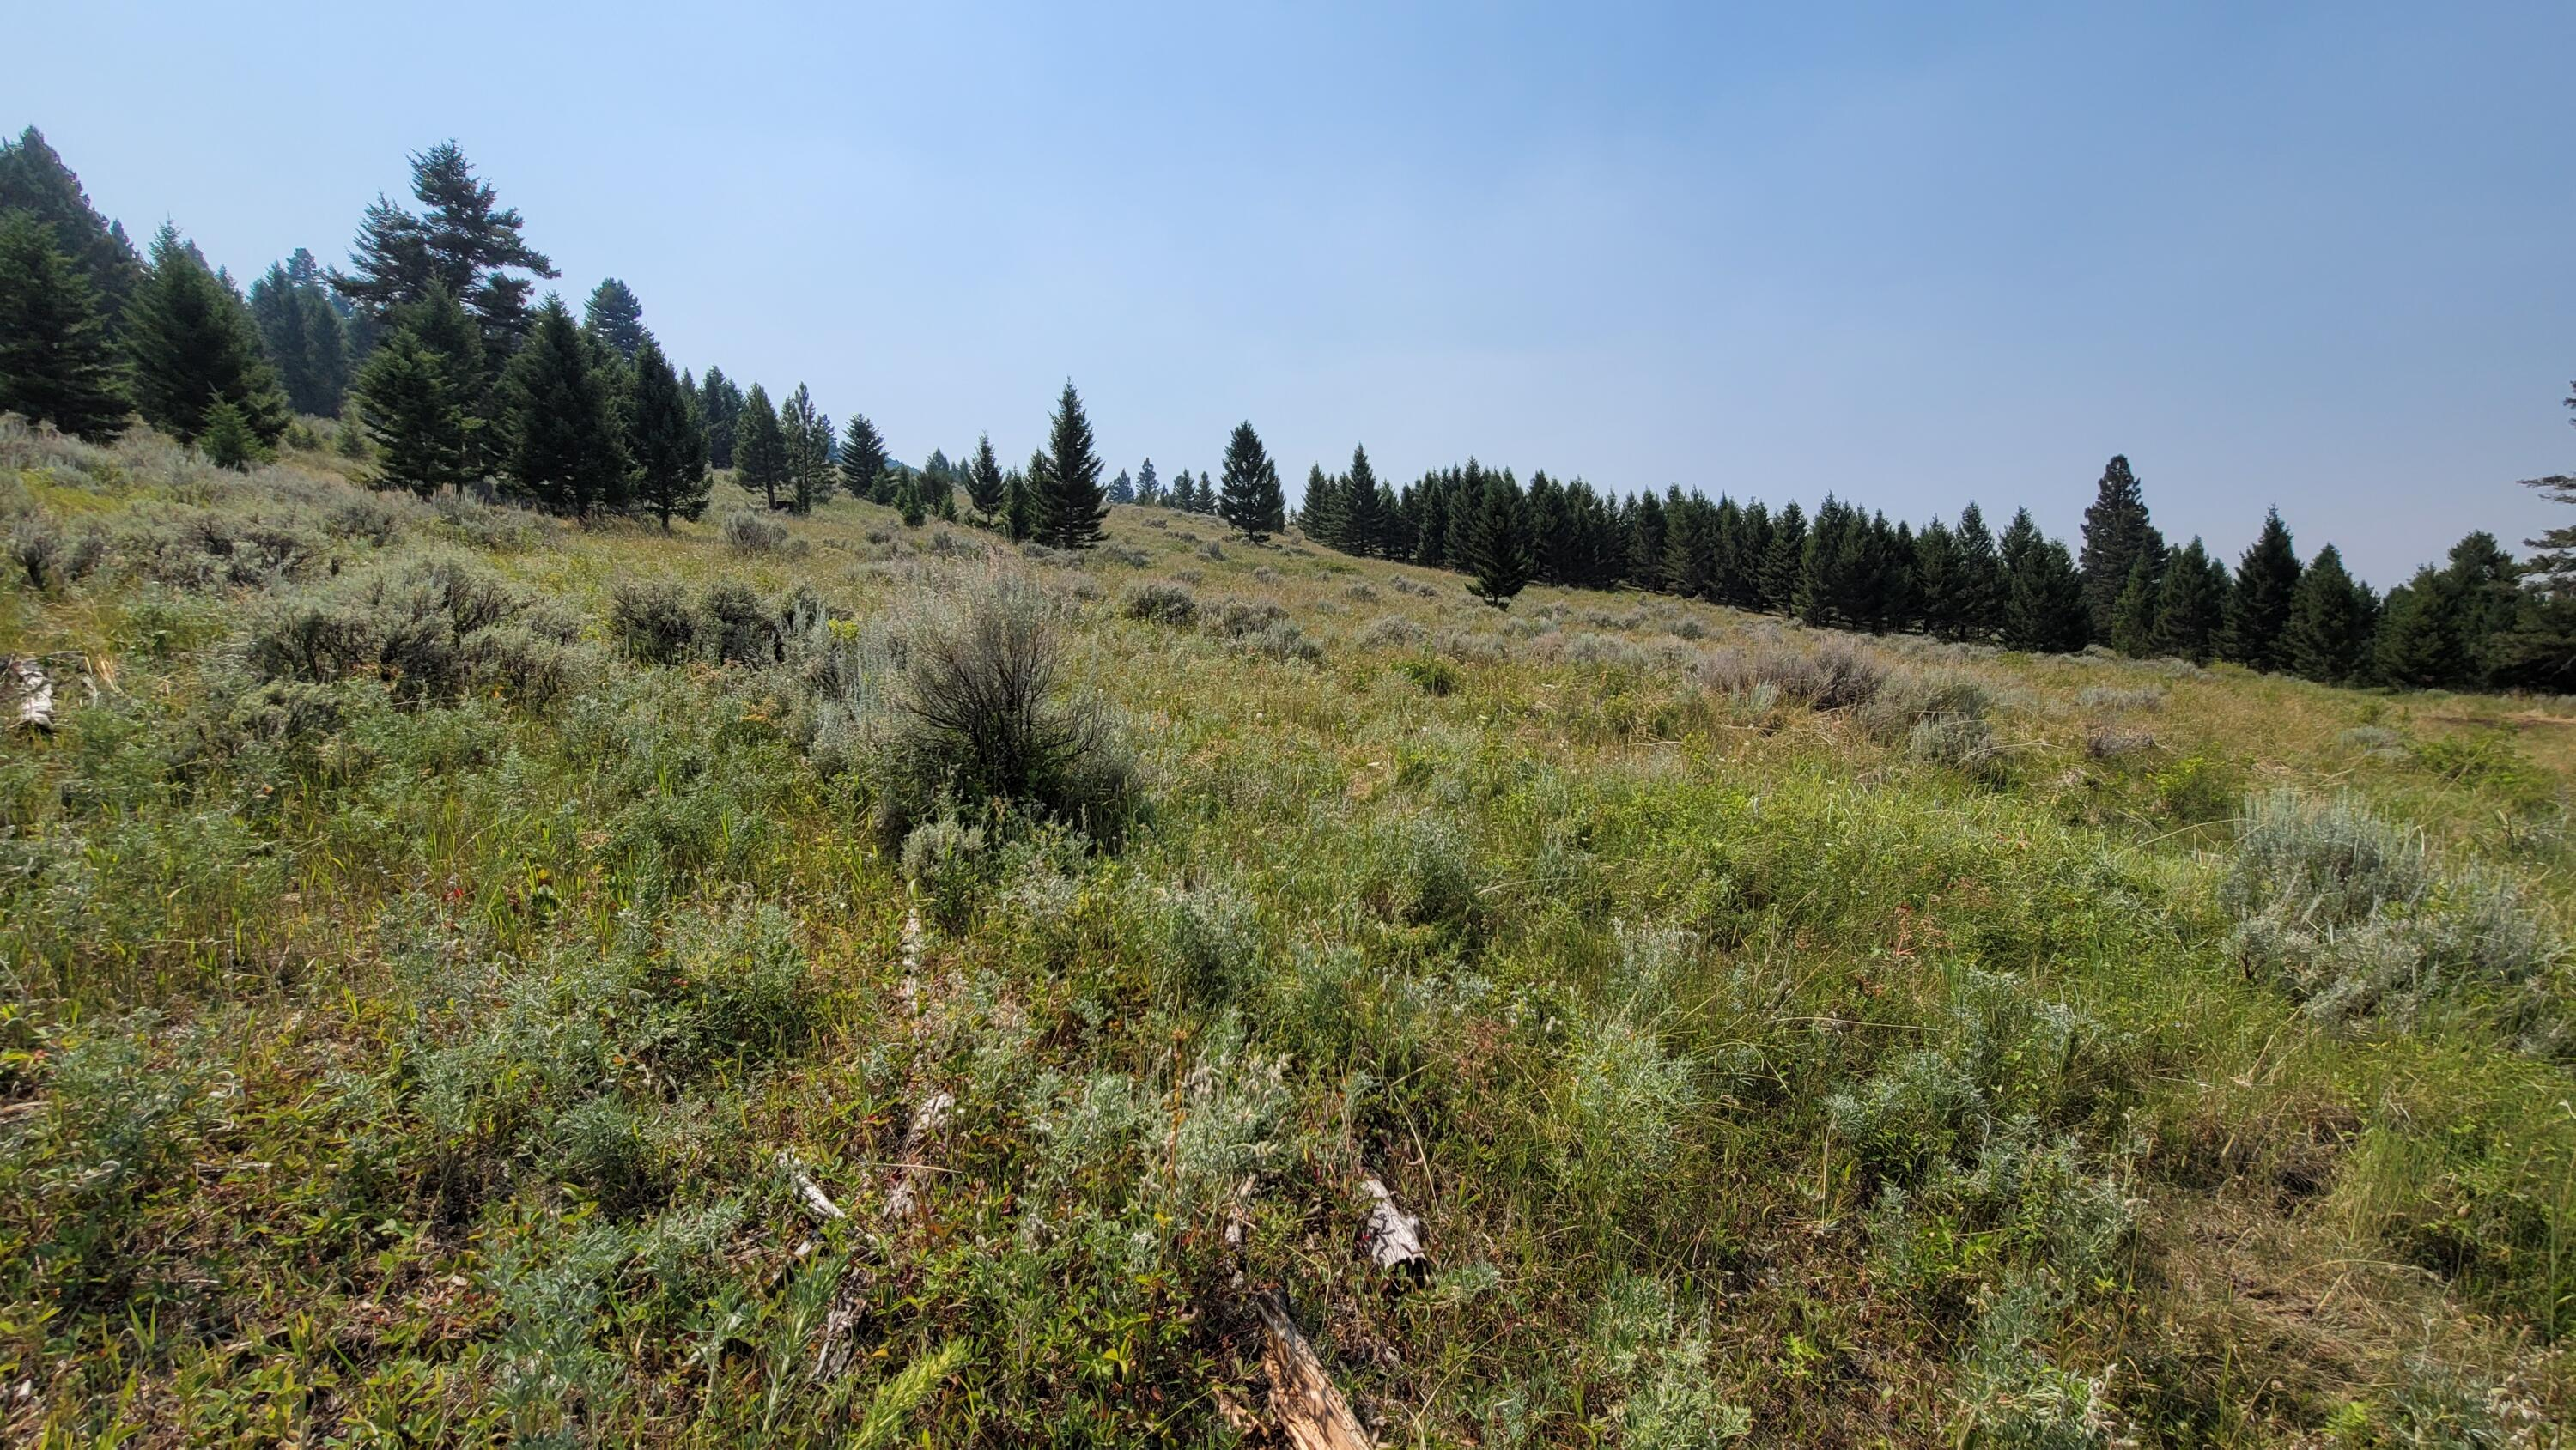 Spring Located Near Top of Lot, Private Building Sites, Open Parks and 360 Views, Good Access Roads, Some Timber, Close Access to Over 20,000 Acres of Public Land*Call Dan and Cortney at 406-439-5414, or your Real Estate Professional.